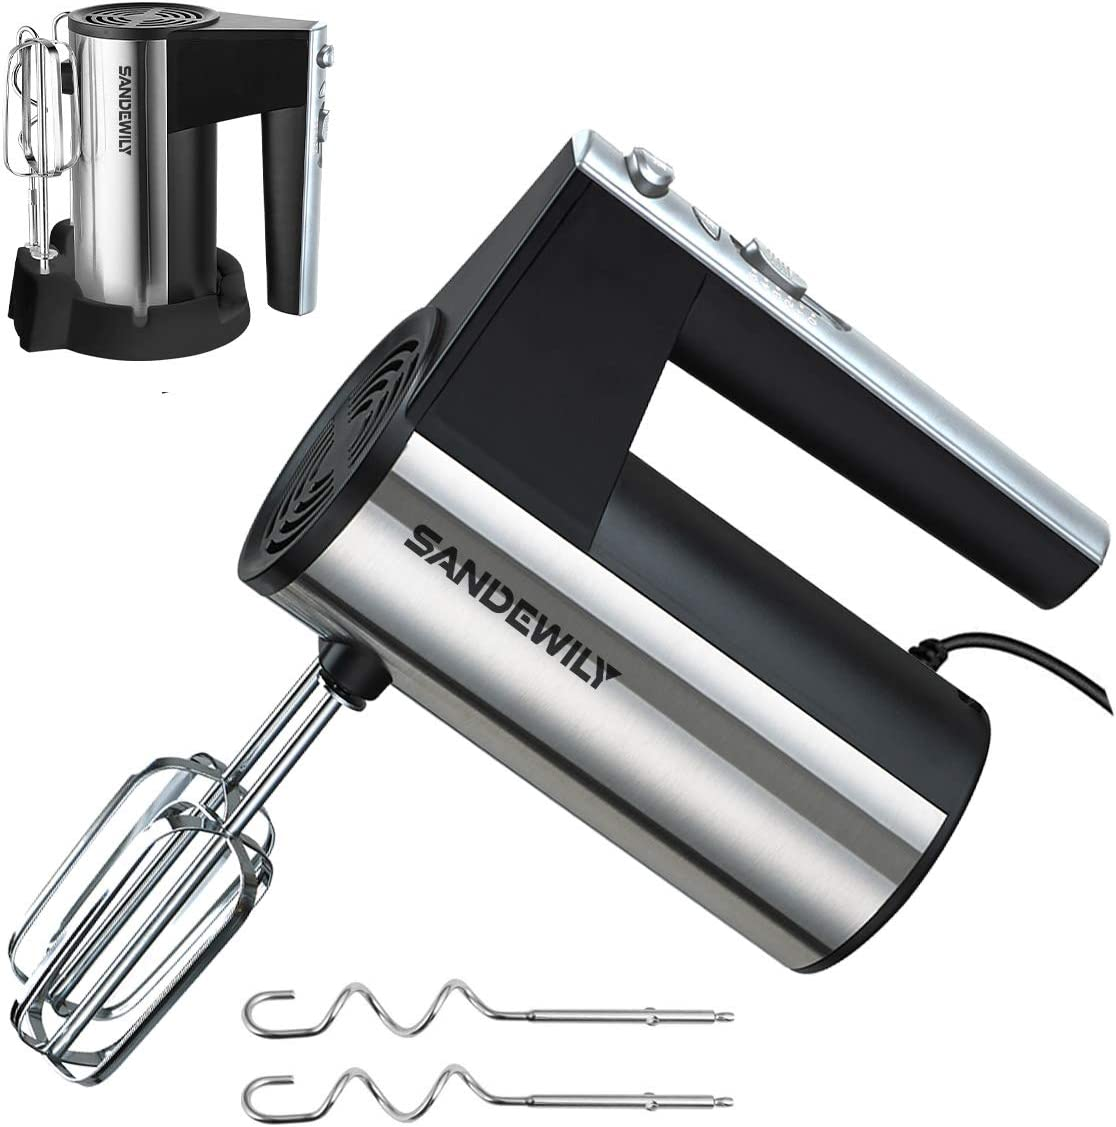 Hand mixer Electric,5 Speed 300W Ultra Power Kitchen Handheld Mixer with Storage Case and 4 Stainless Steel Accessories,Whipping Mixing Cookies, Brownies, Cakes, Dough, Batters, Meringues